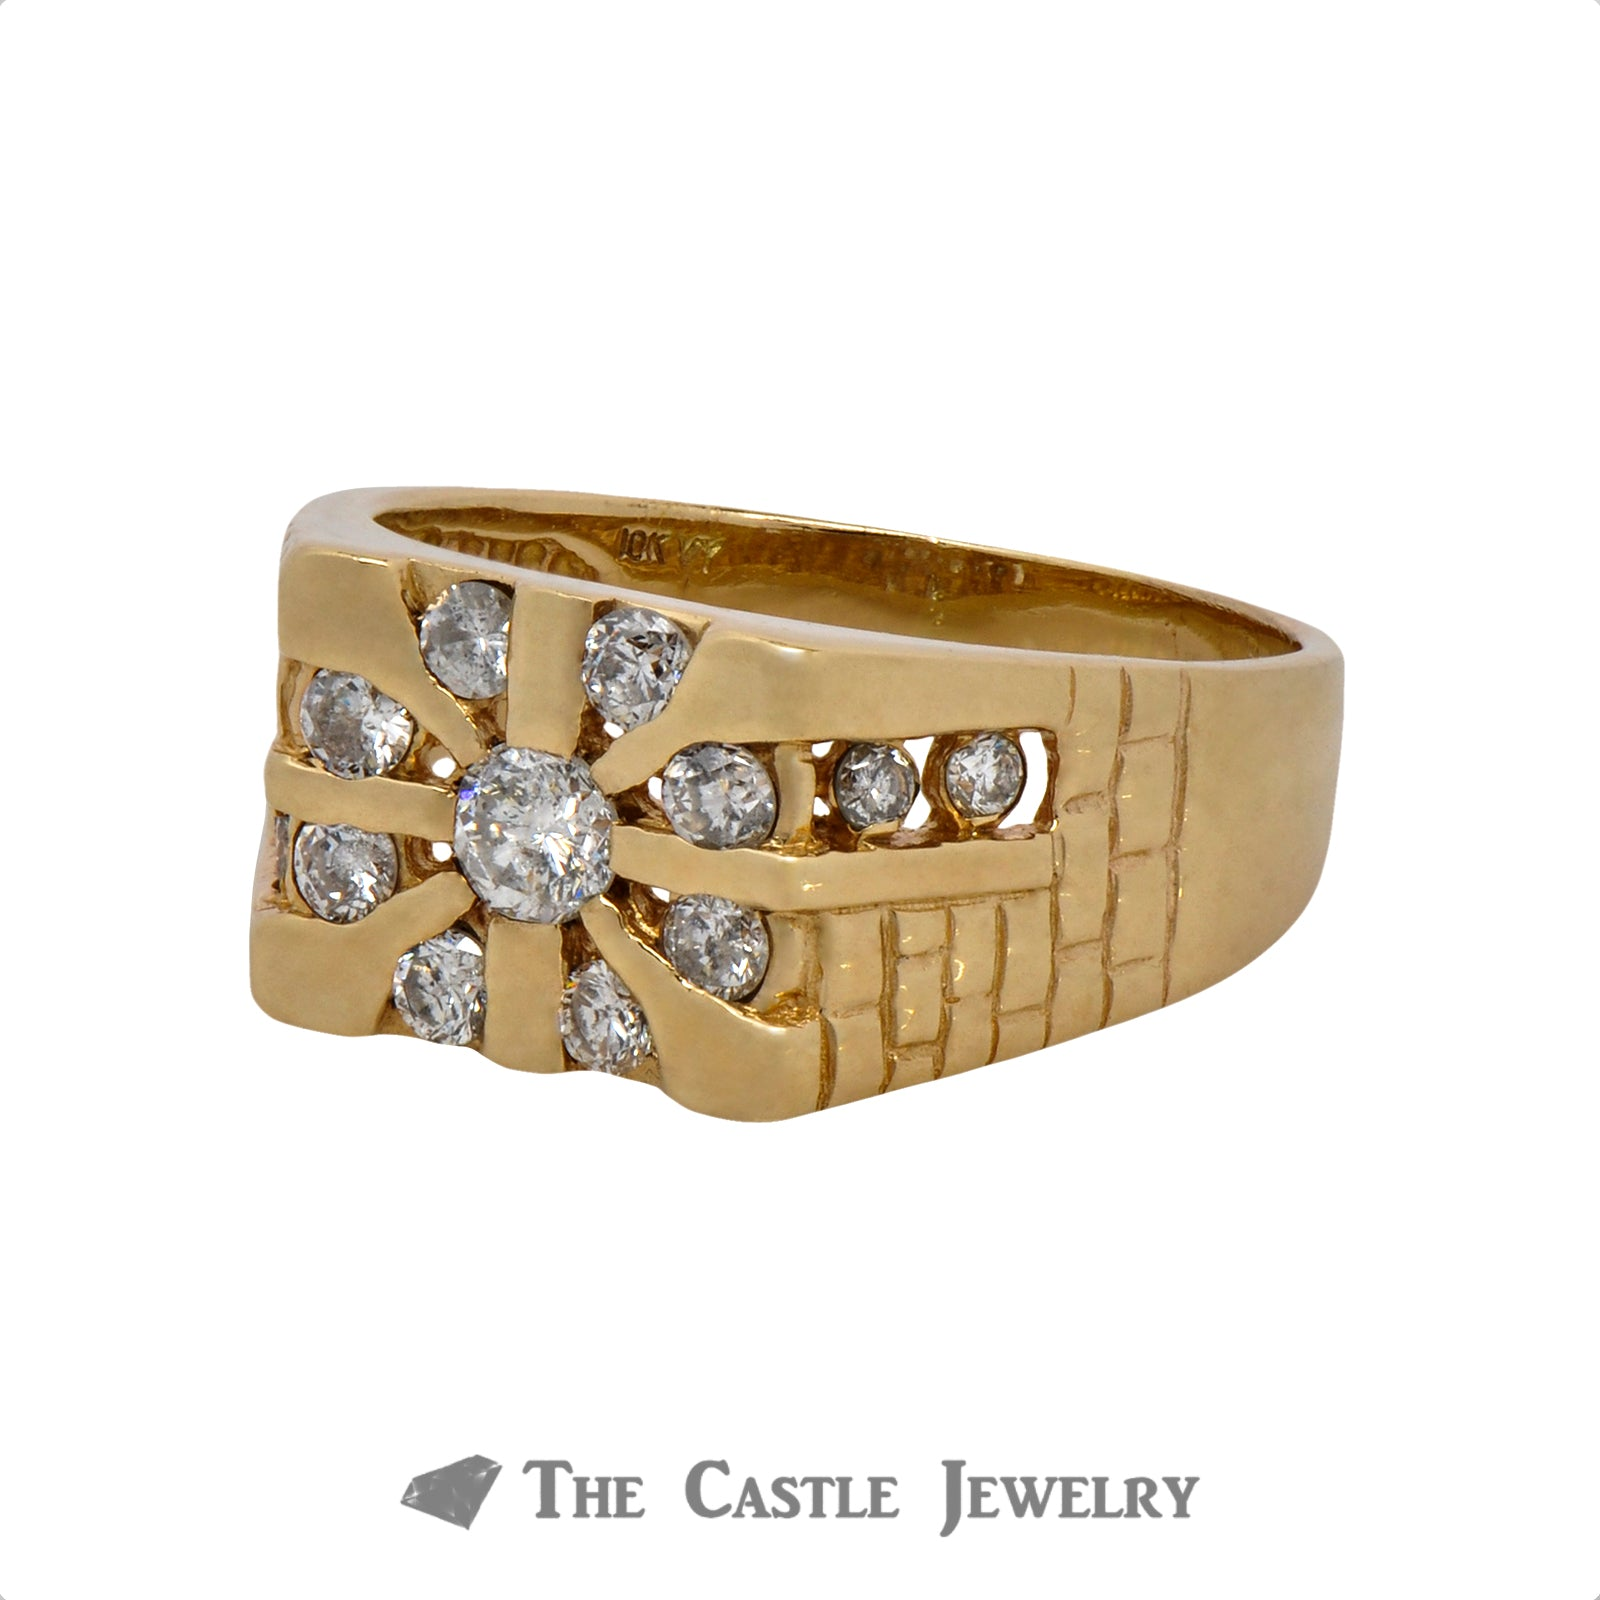 1cttw Gent's Sunburst Style Diamond Ring Crafted in 10k Yellow Gold-2